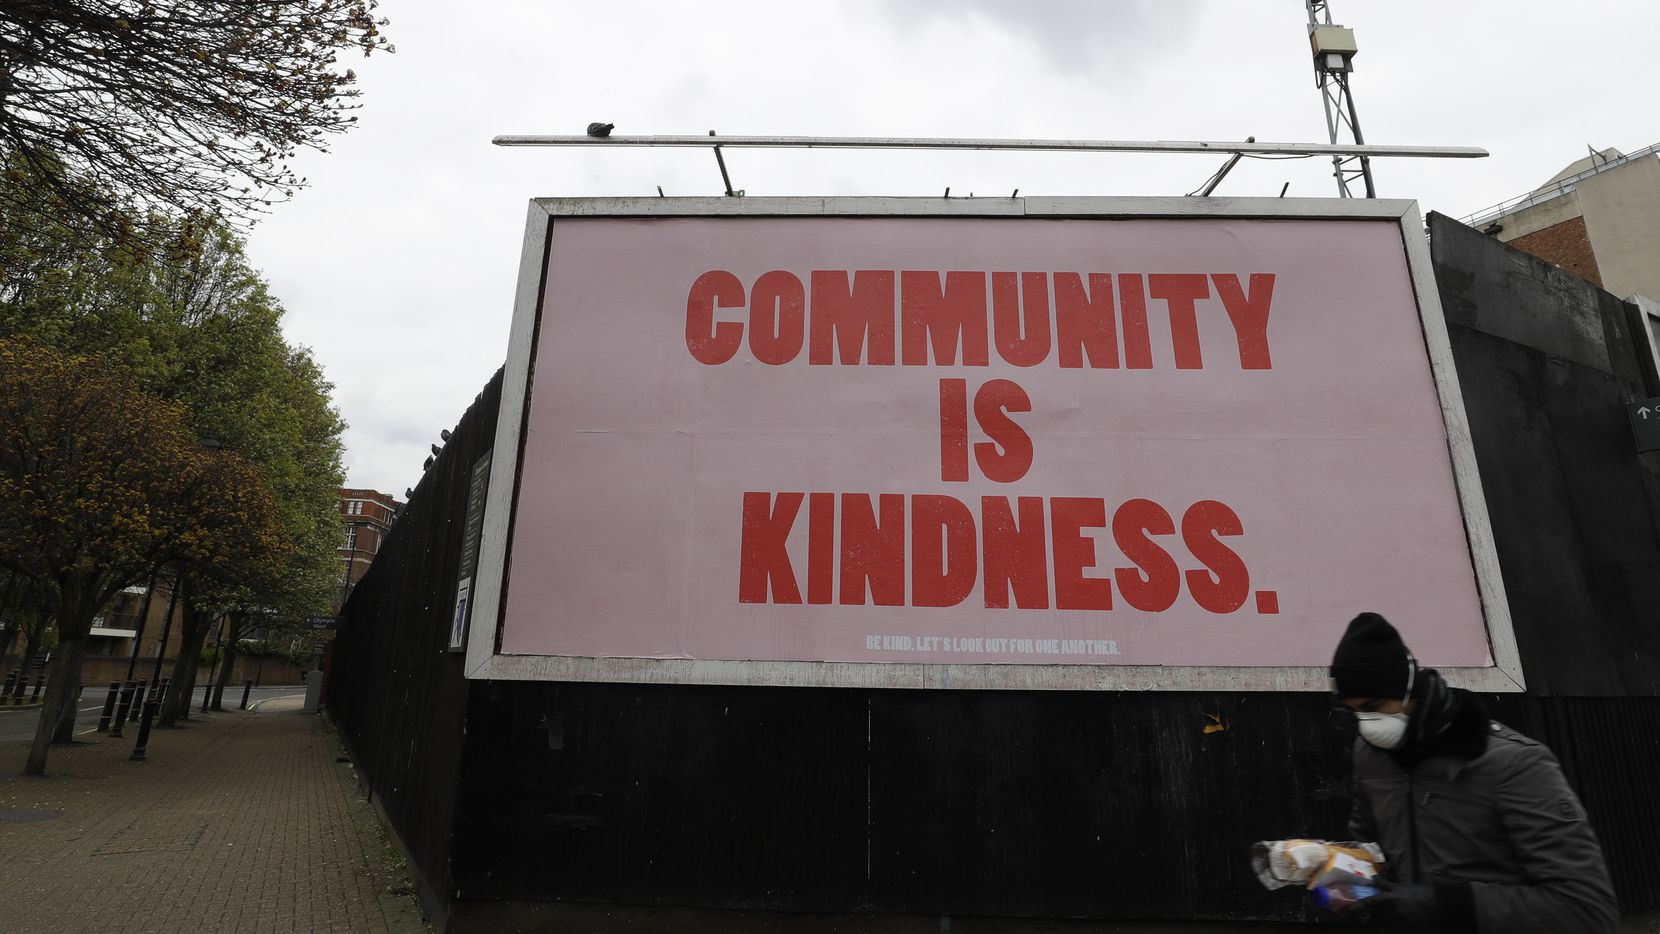 Tell us your stories of kindness and resilience during the coronavirus pandemic.